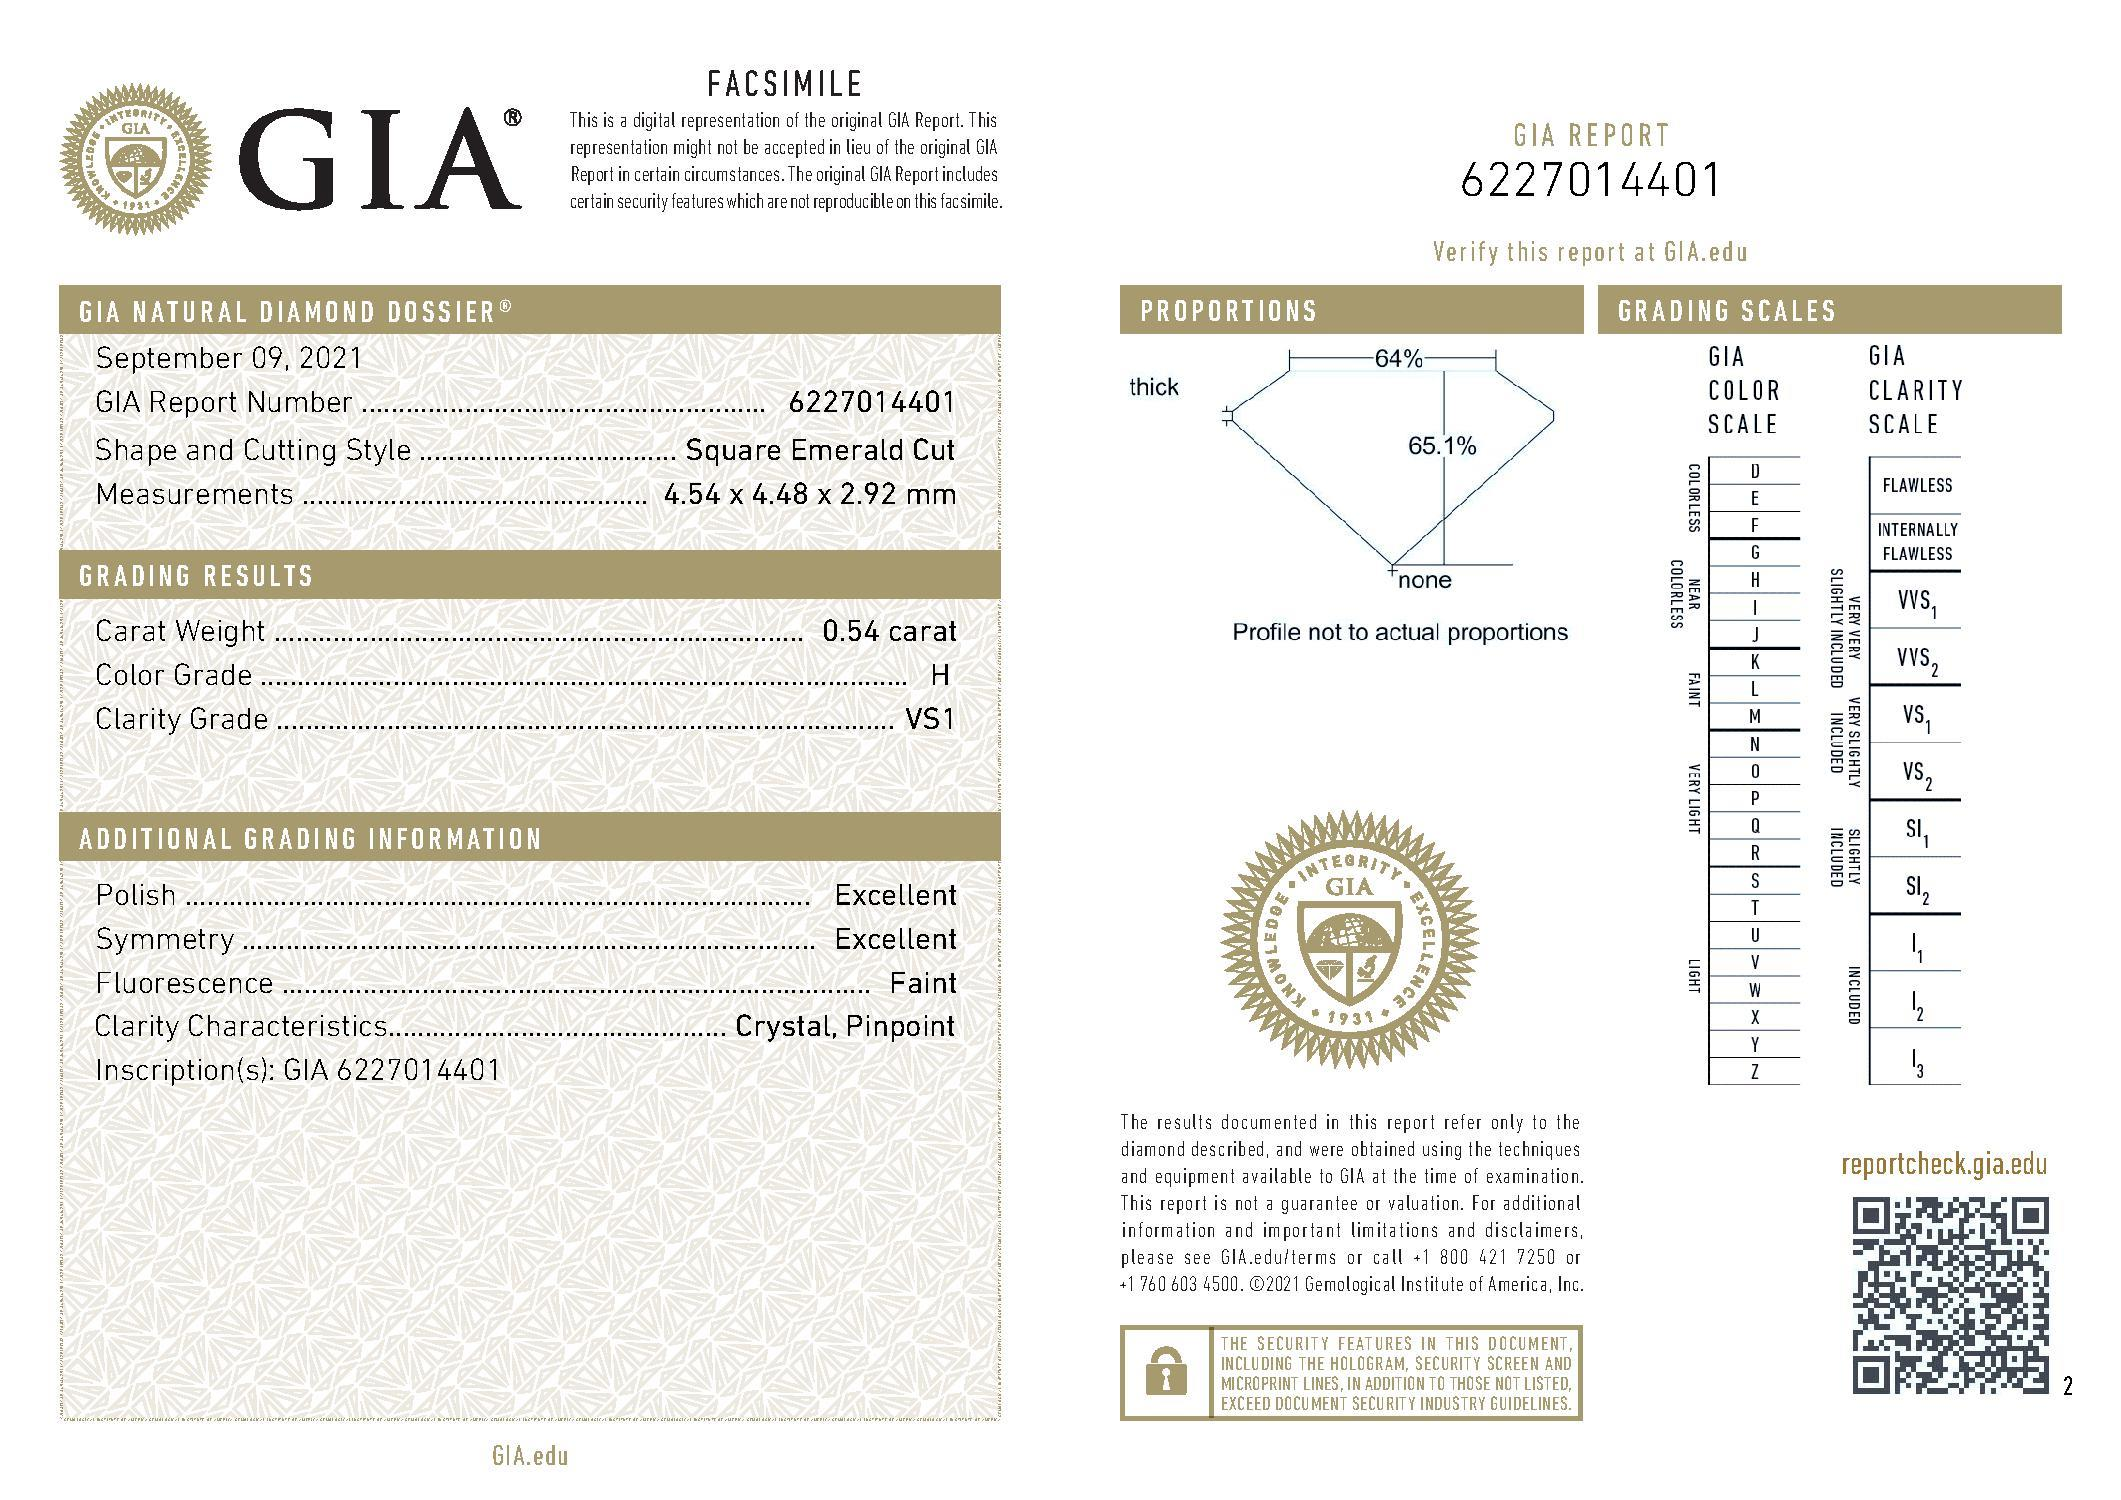 This is a 0.54 carat asscher shape, H color, VS1 clarity natural diamond accompanied by a GIA grading report.